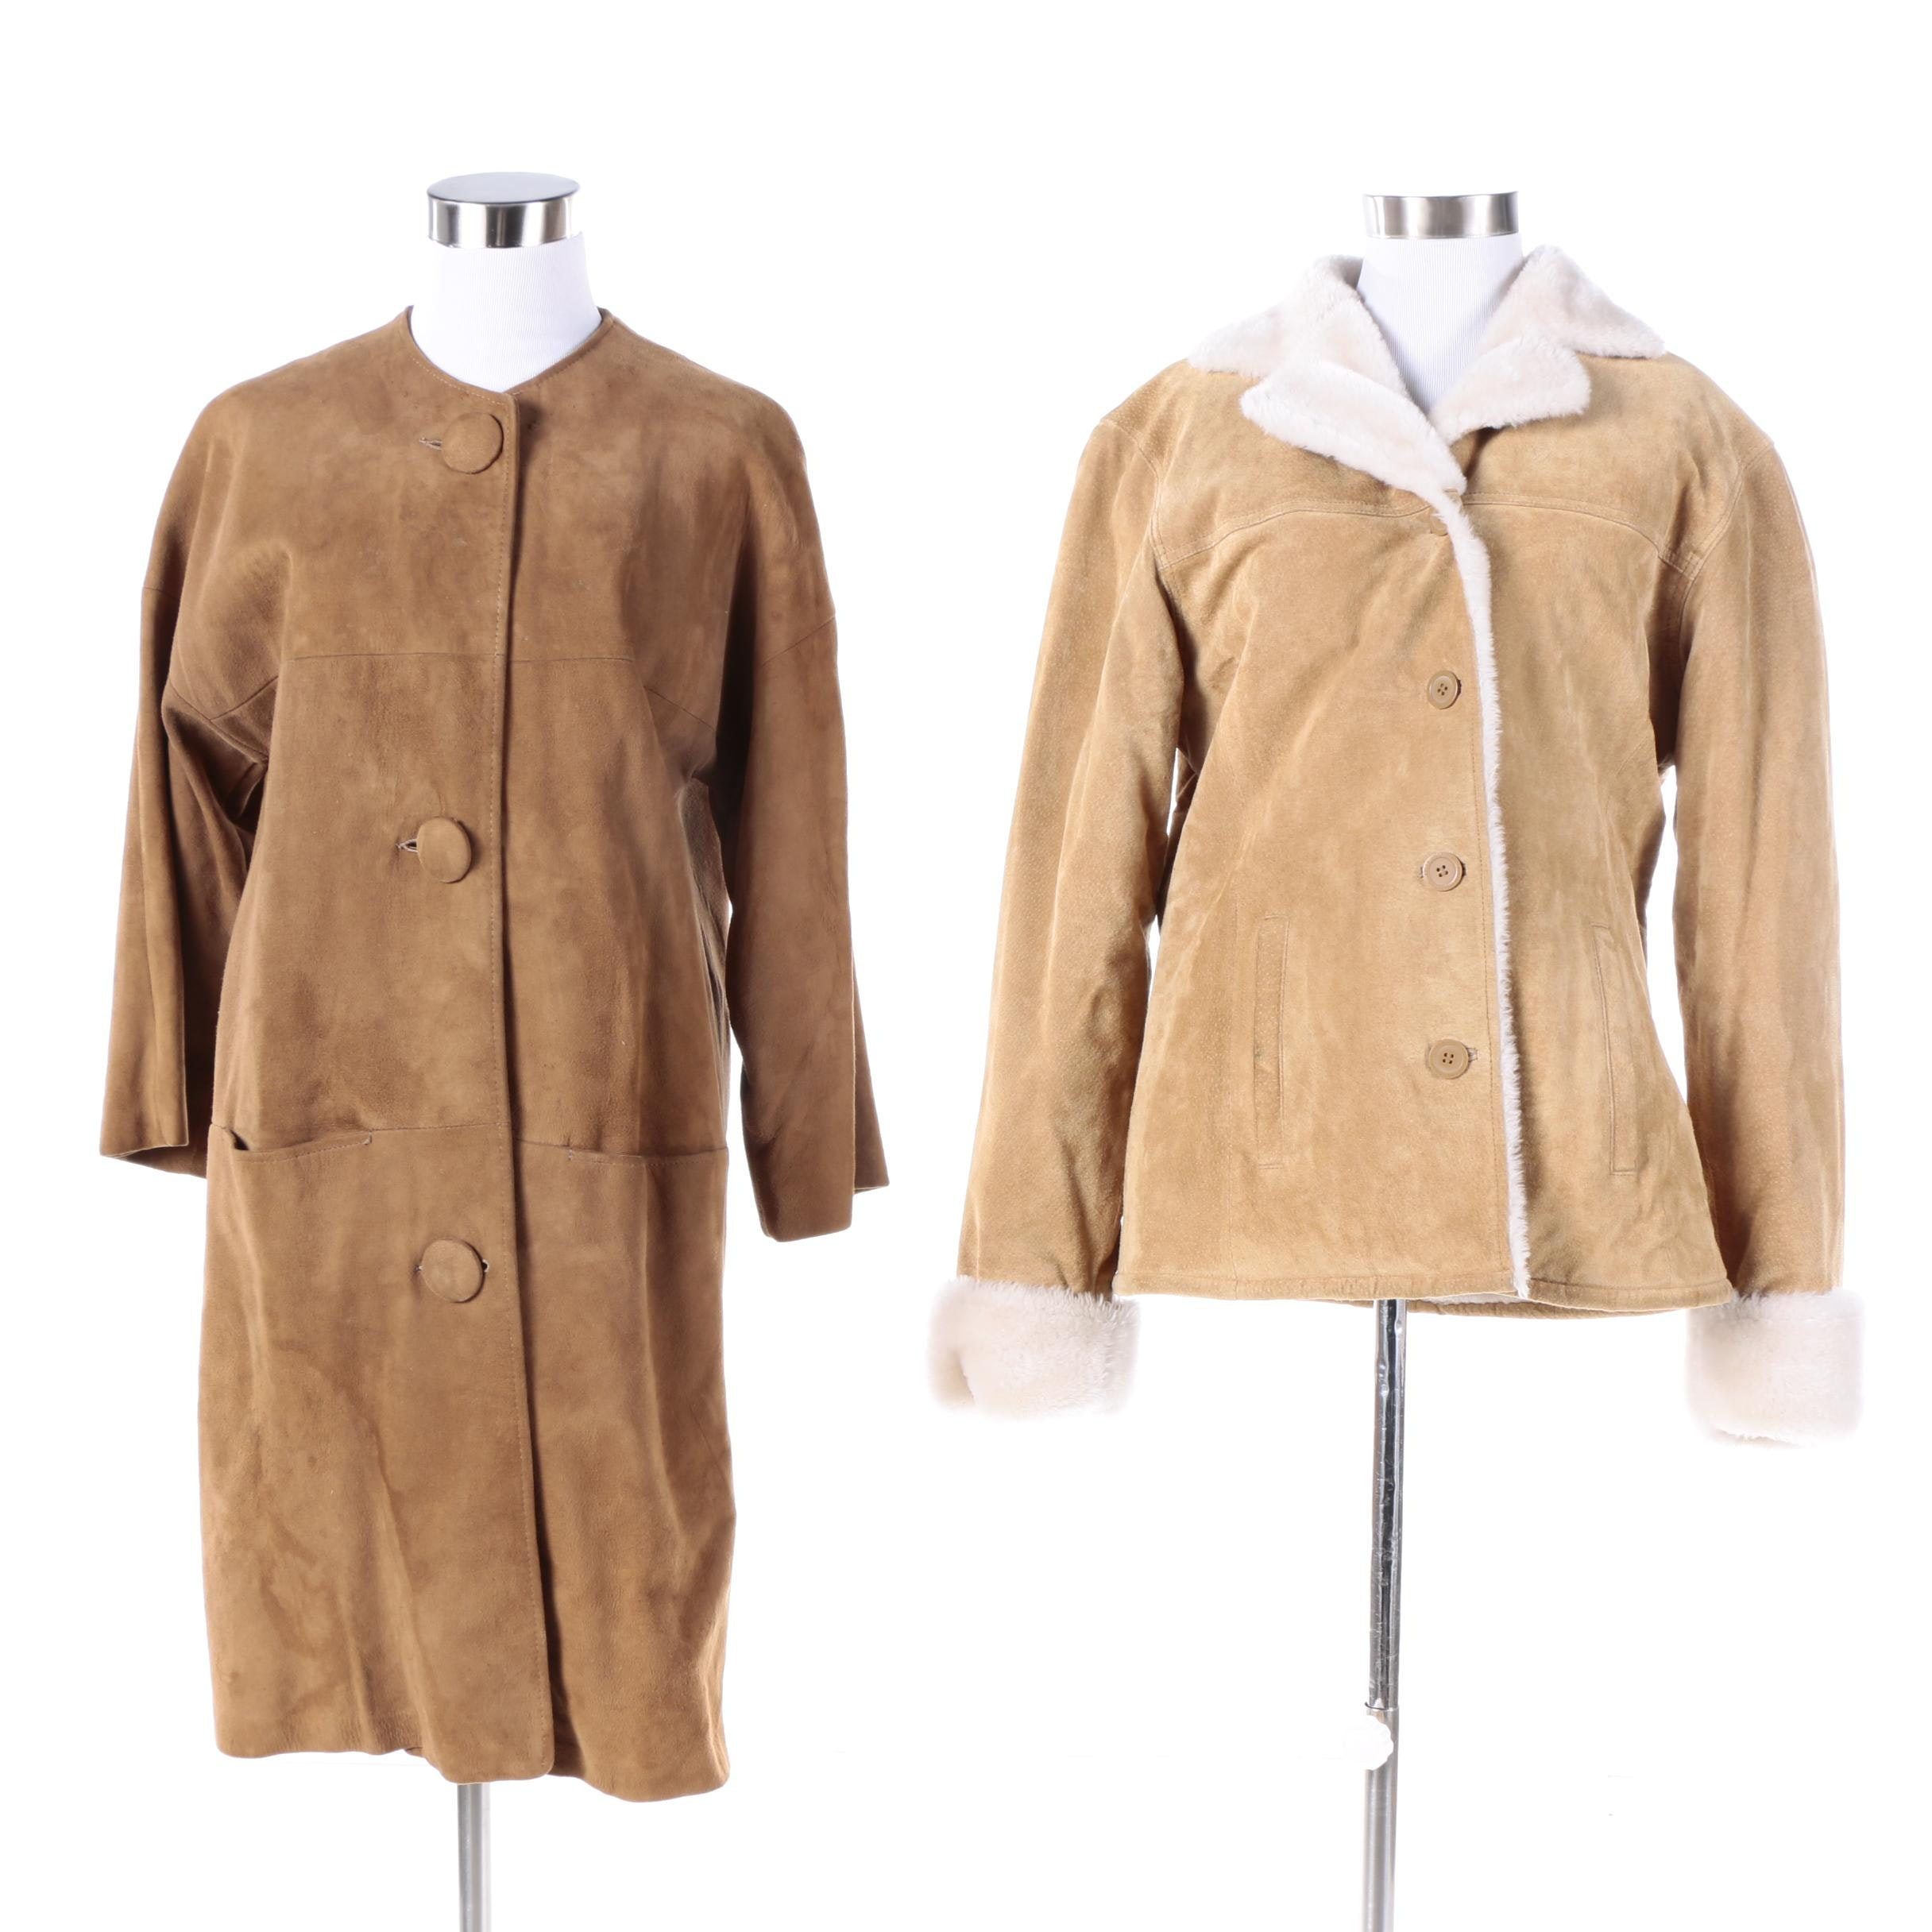 Women's Suede Coat and Jacket Including Adler Collection